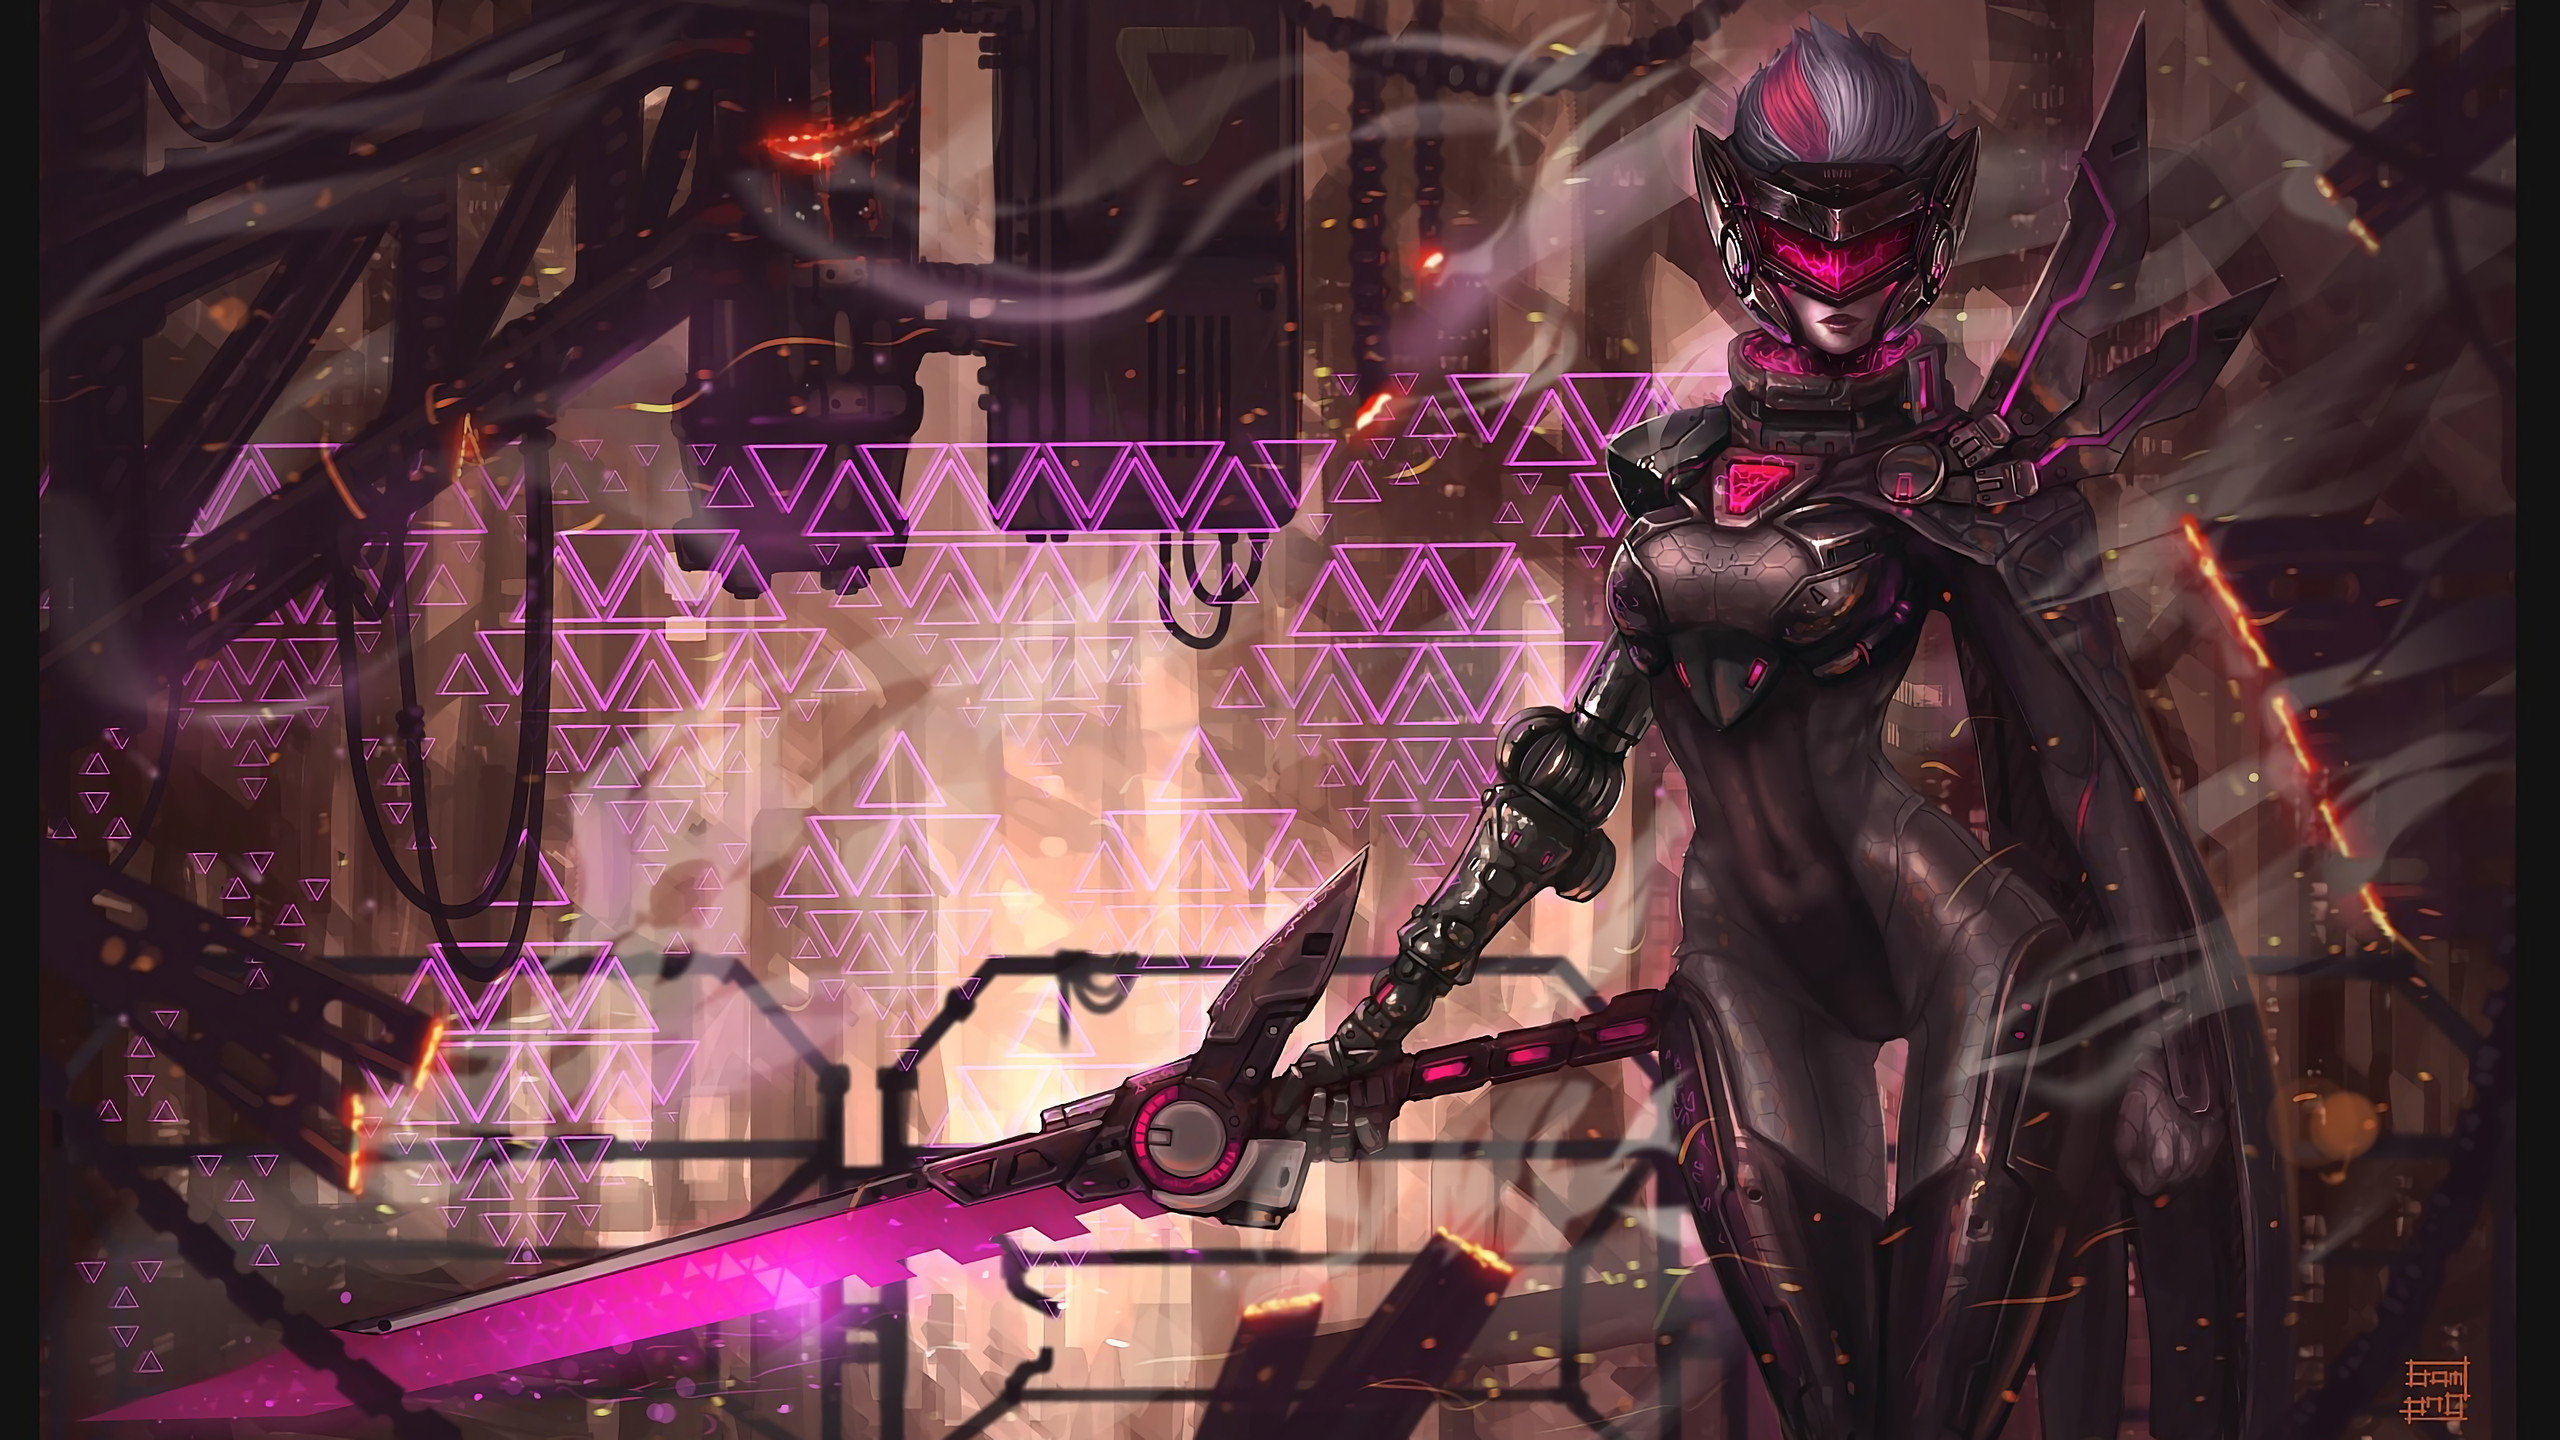 Fiora League Of Legends Wallpapers 2560x1440 Desktop Backgrounds